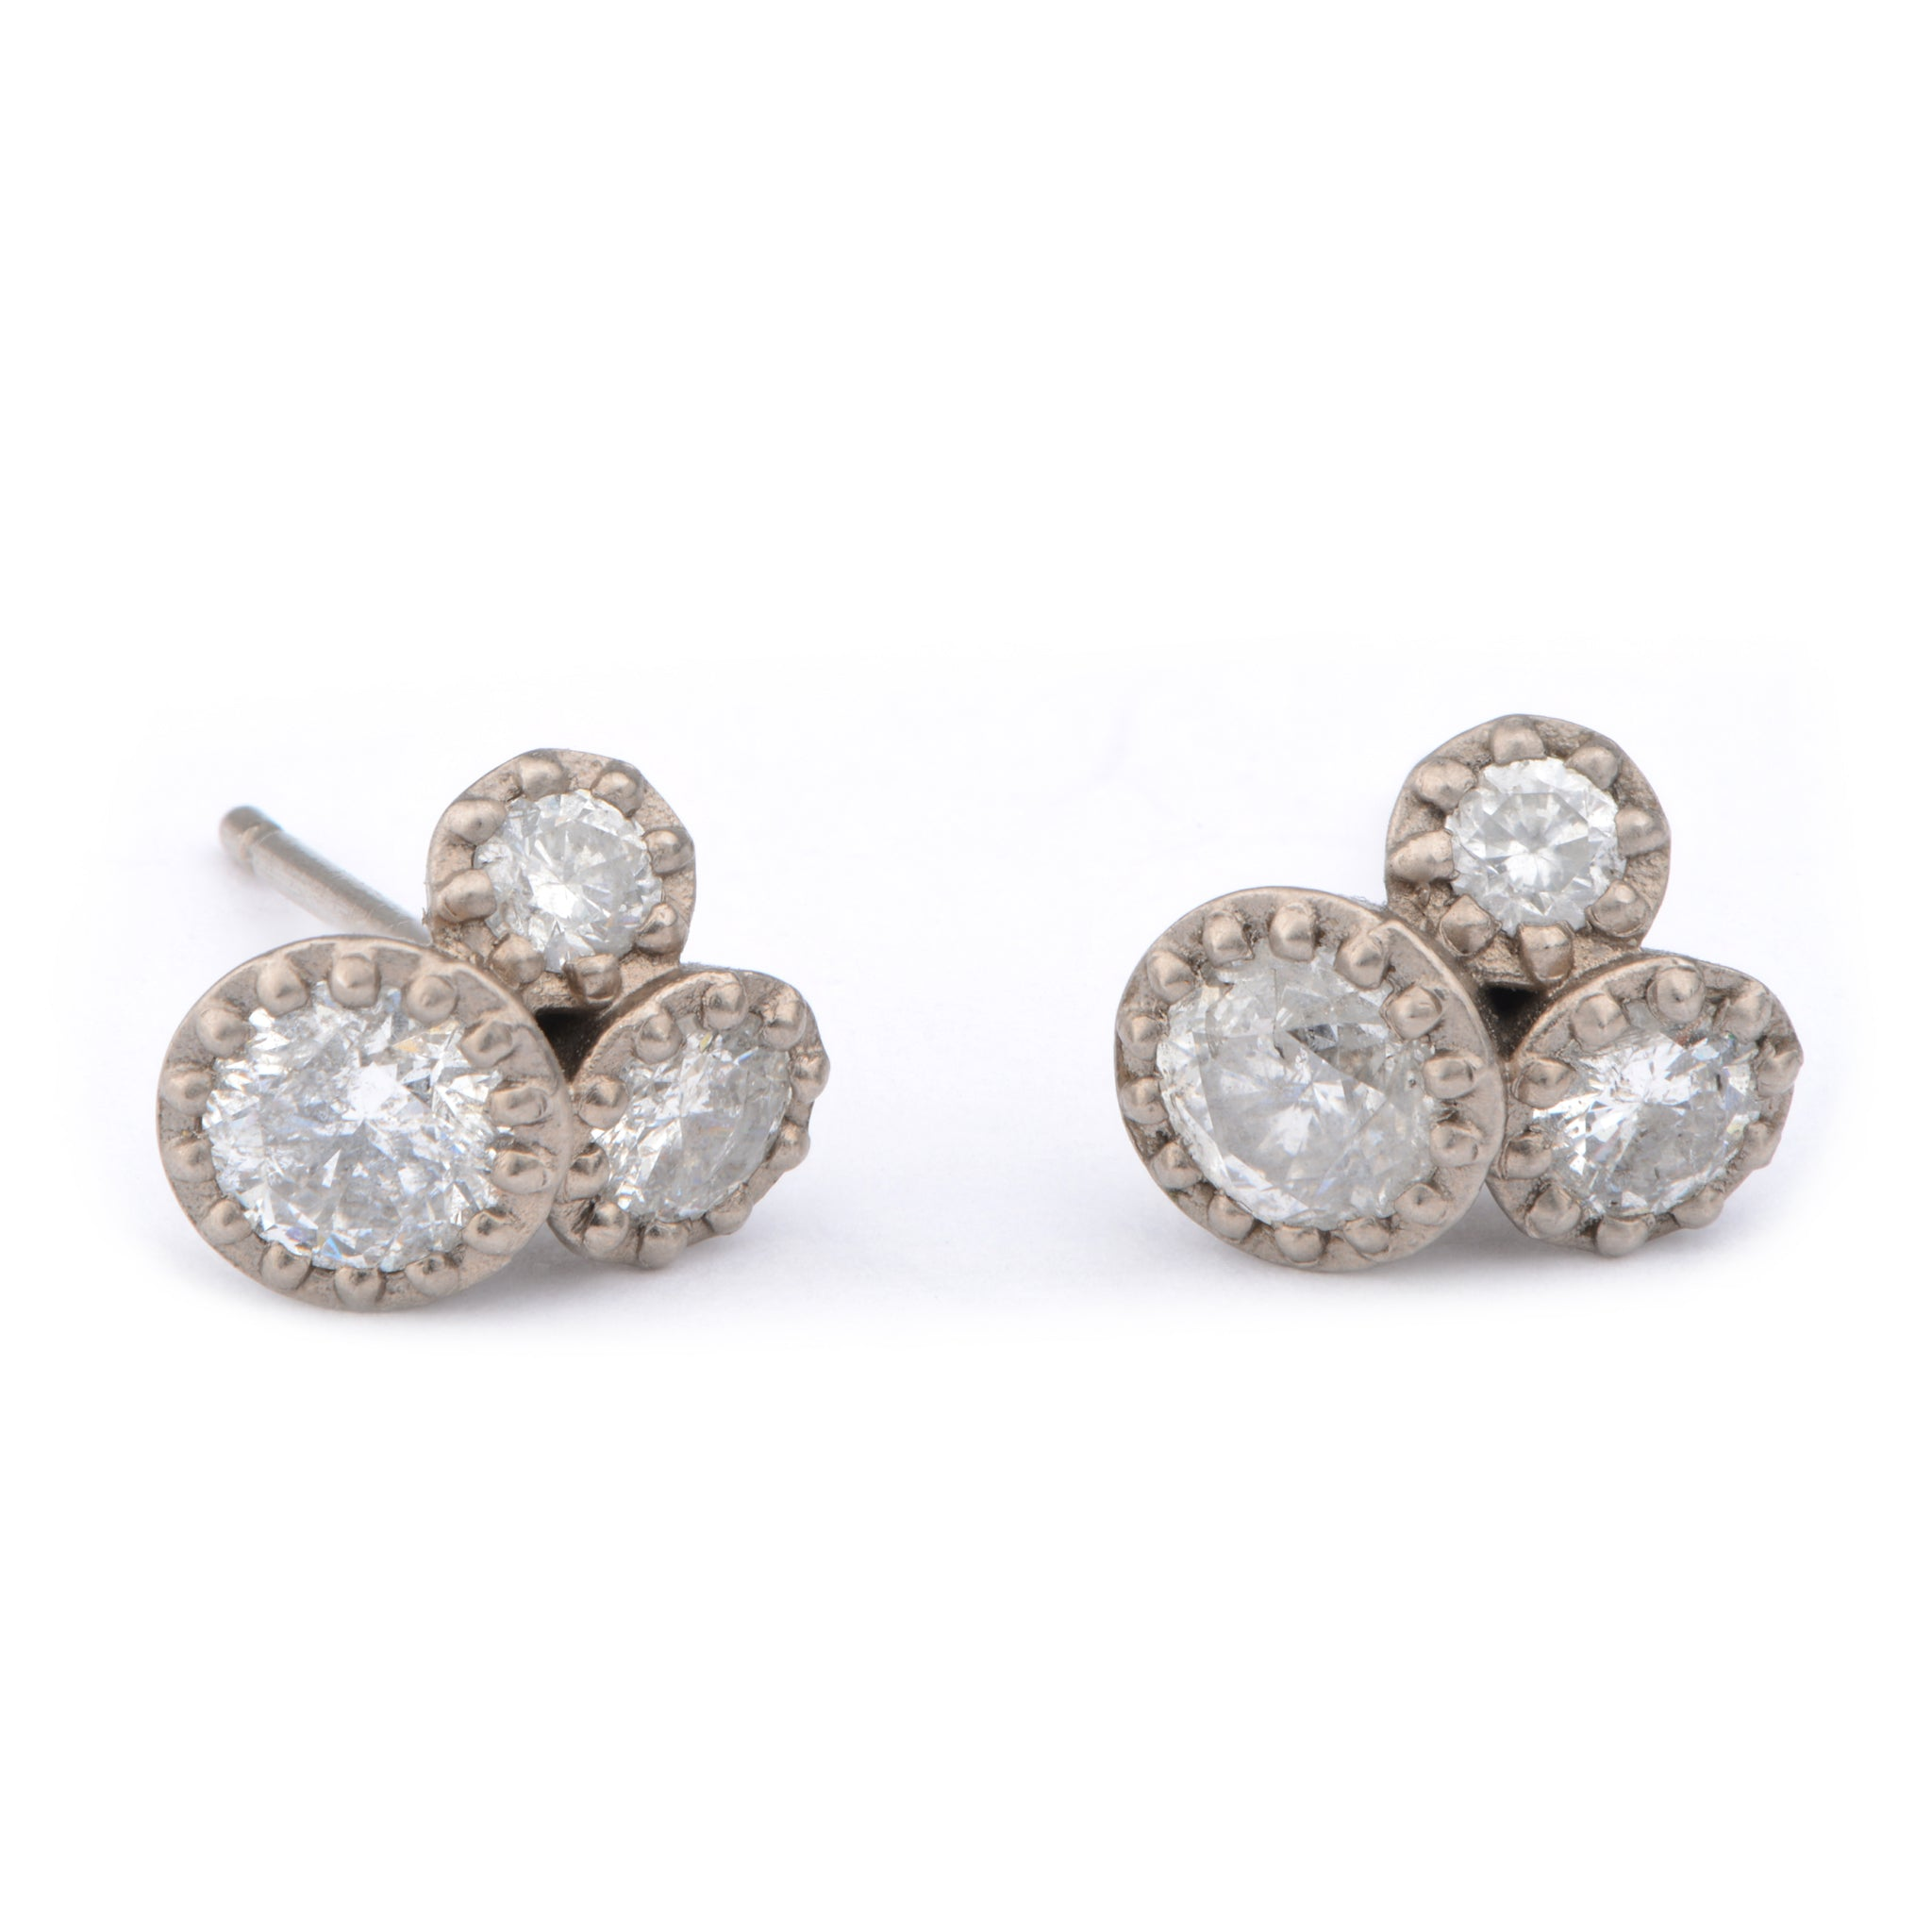 Fiori Tri-Set Diamond 18ct White Gold Studs - James Newman Jewellery